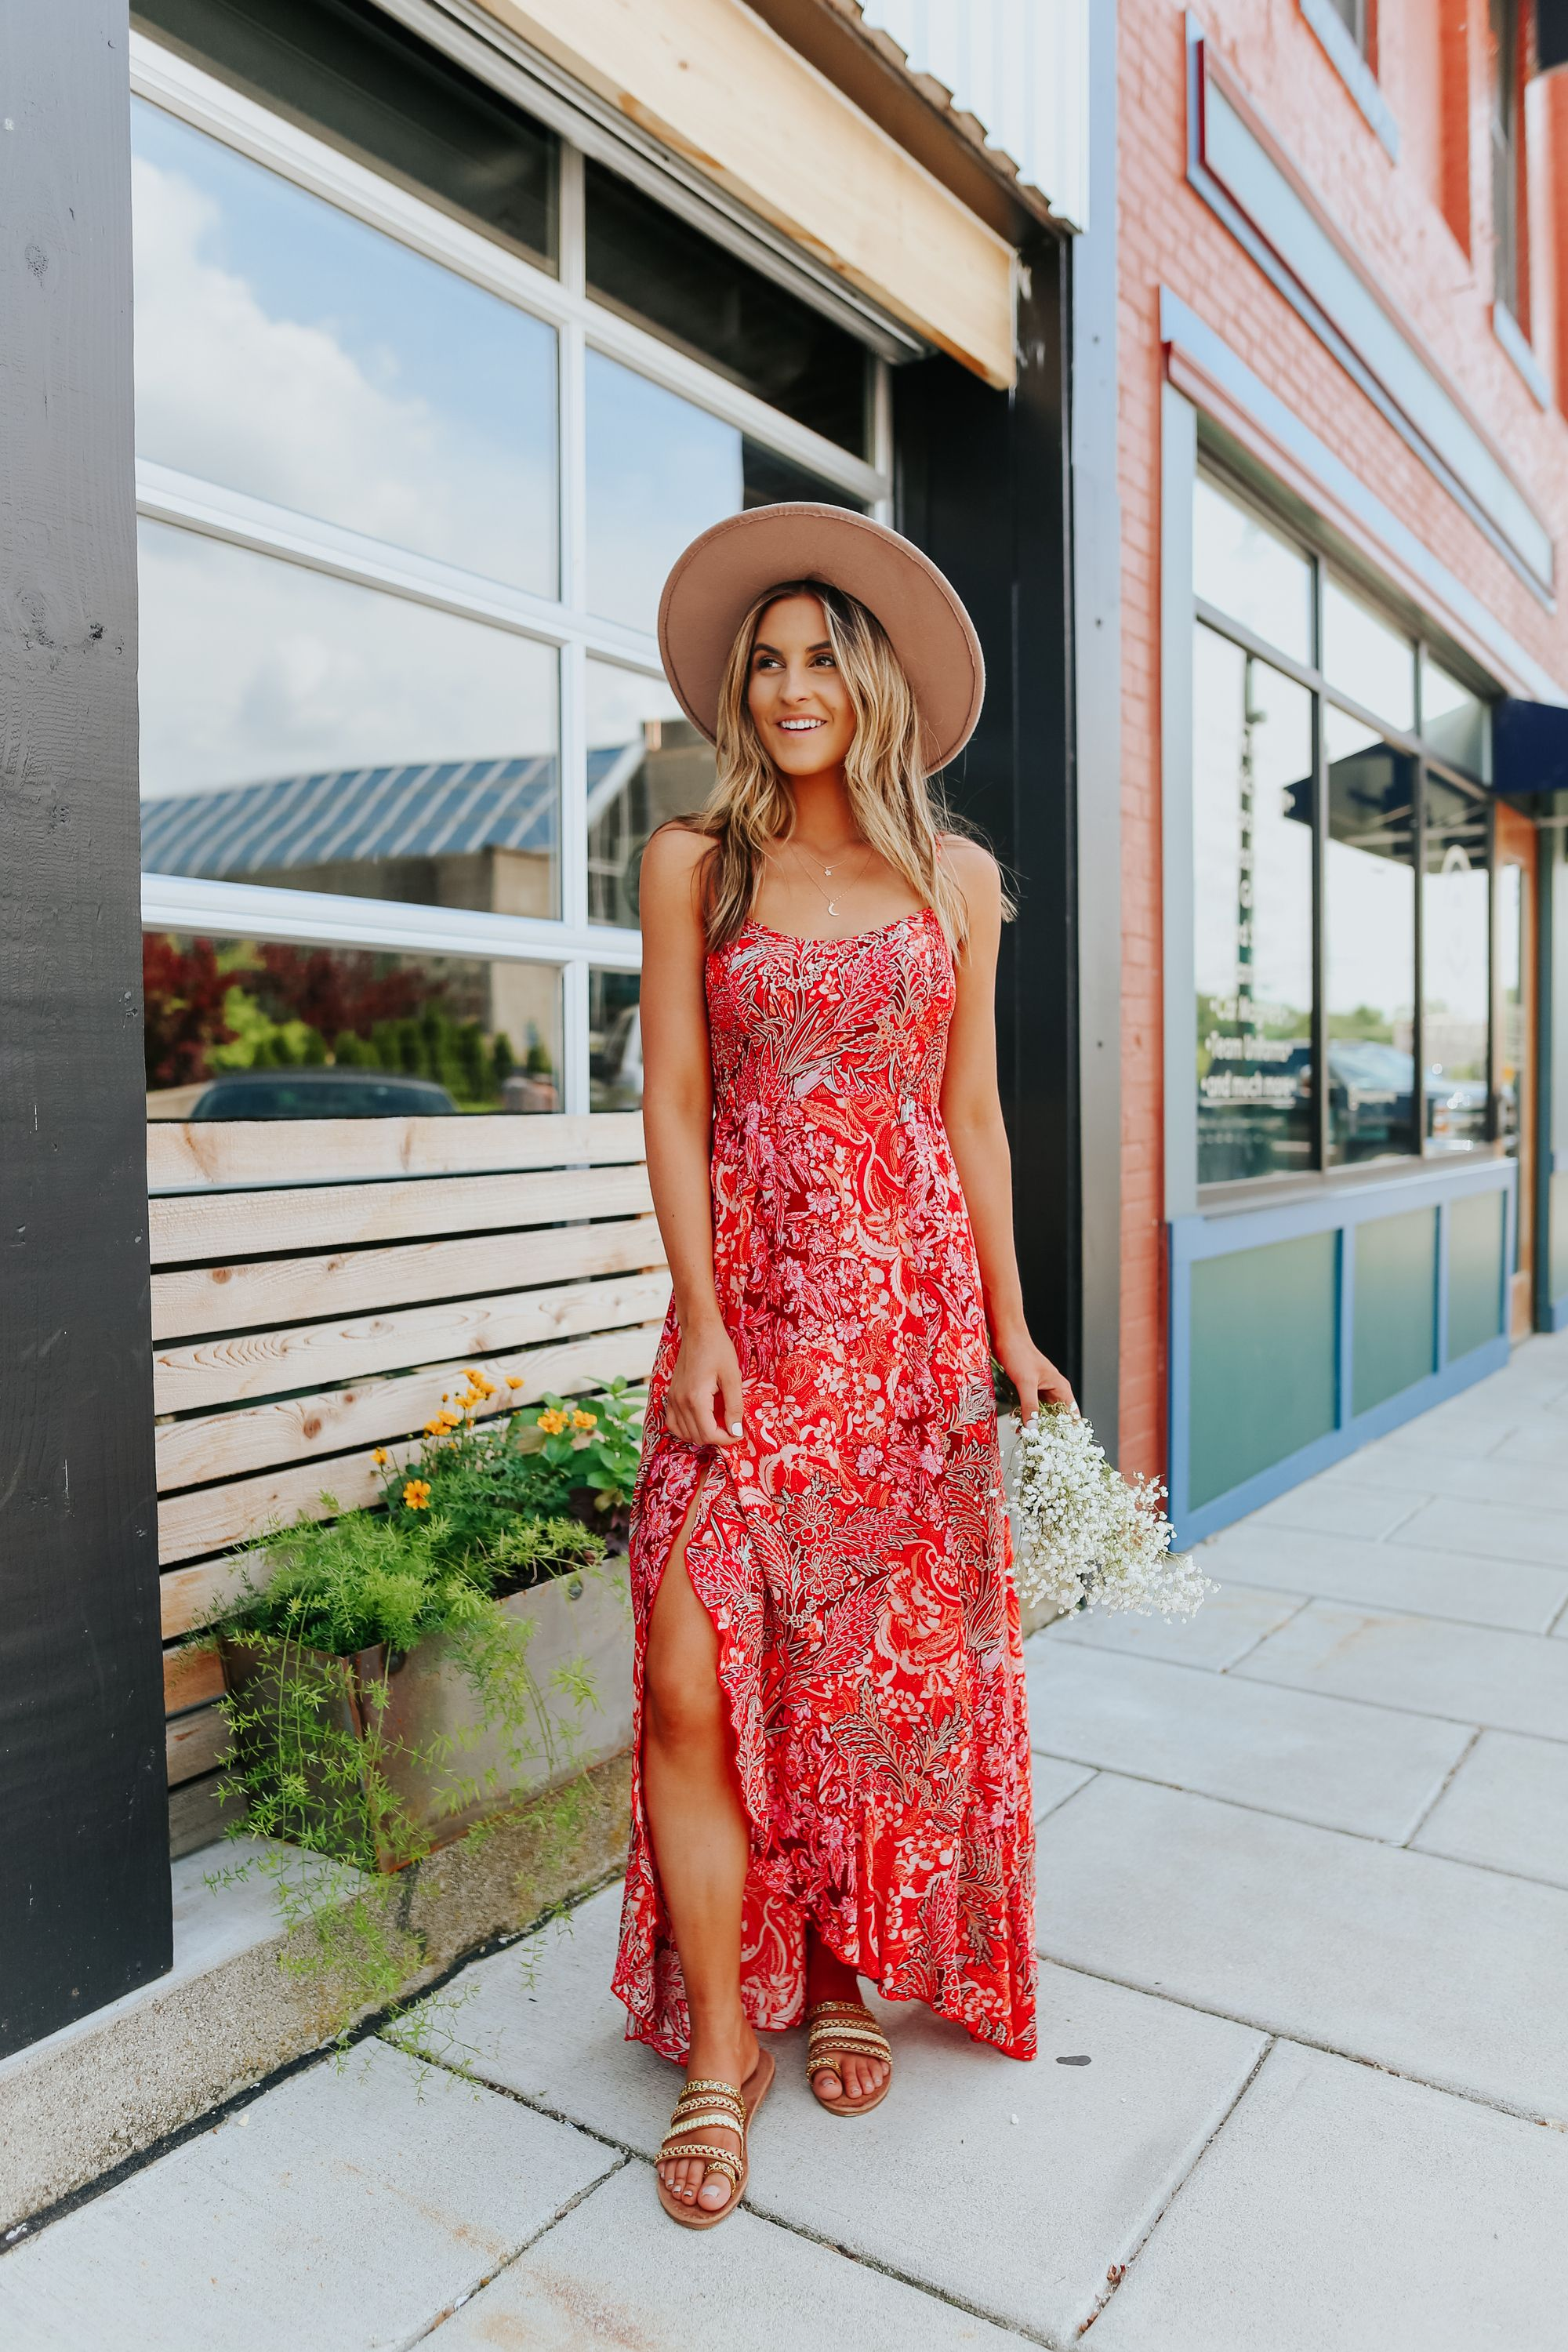 Add This Red Hot Style From Free People To Your Summer Wardrobe This Mixed Floral Print Maxi Slip Dress Features Smocking Maxi Slip Dress Dresses Hot Fashion [ 3000 x 2000 Pixel ]